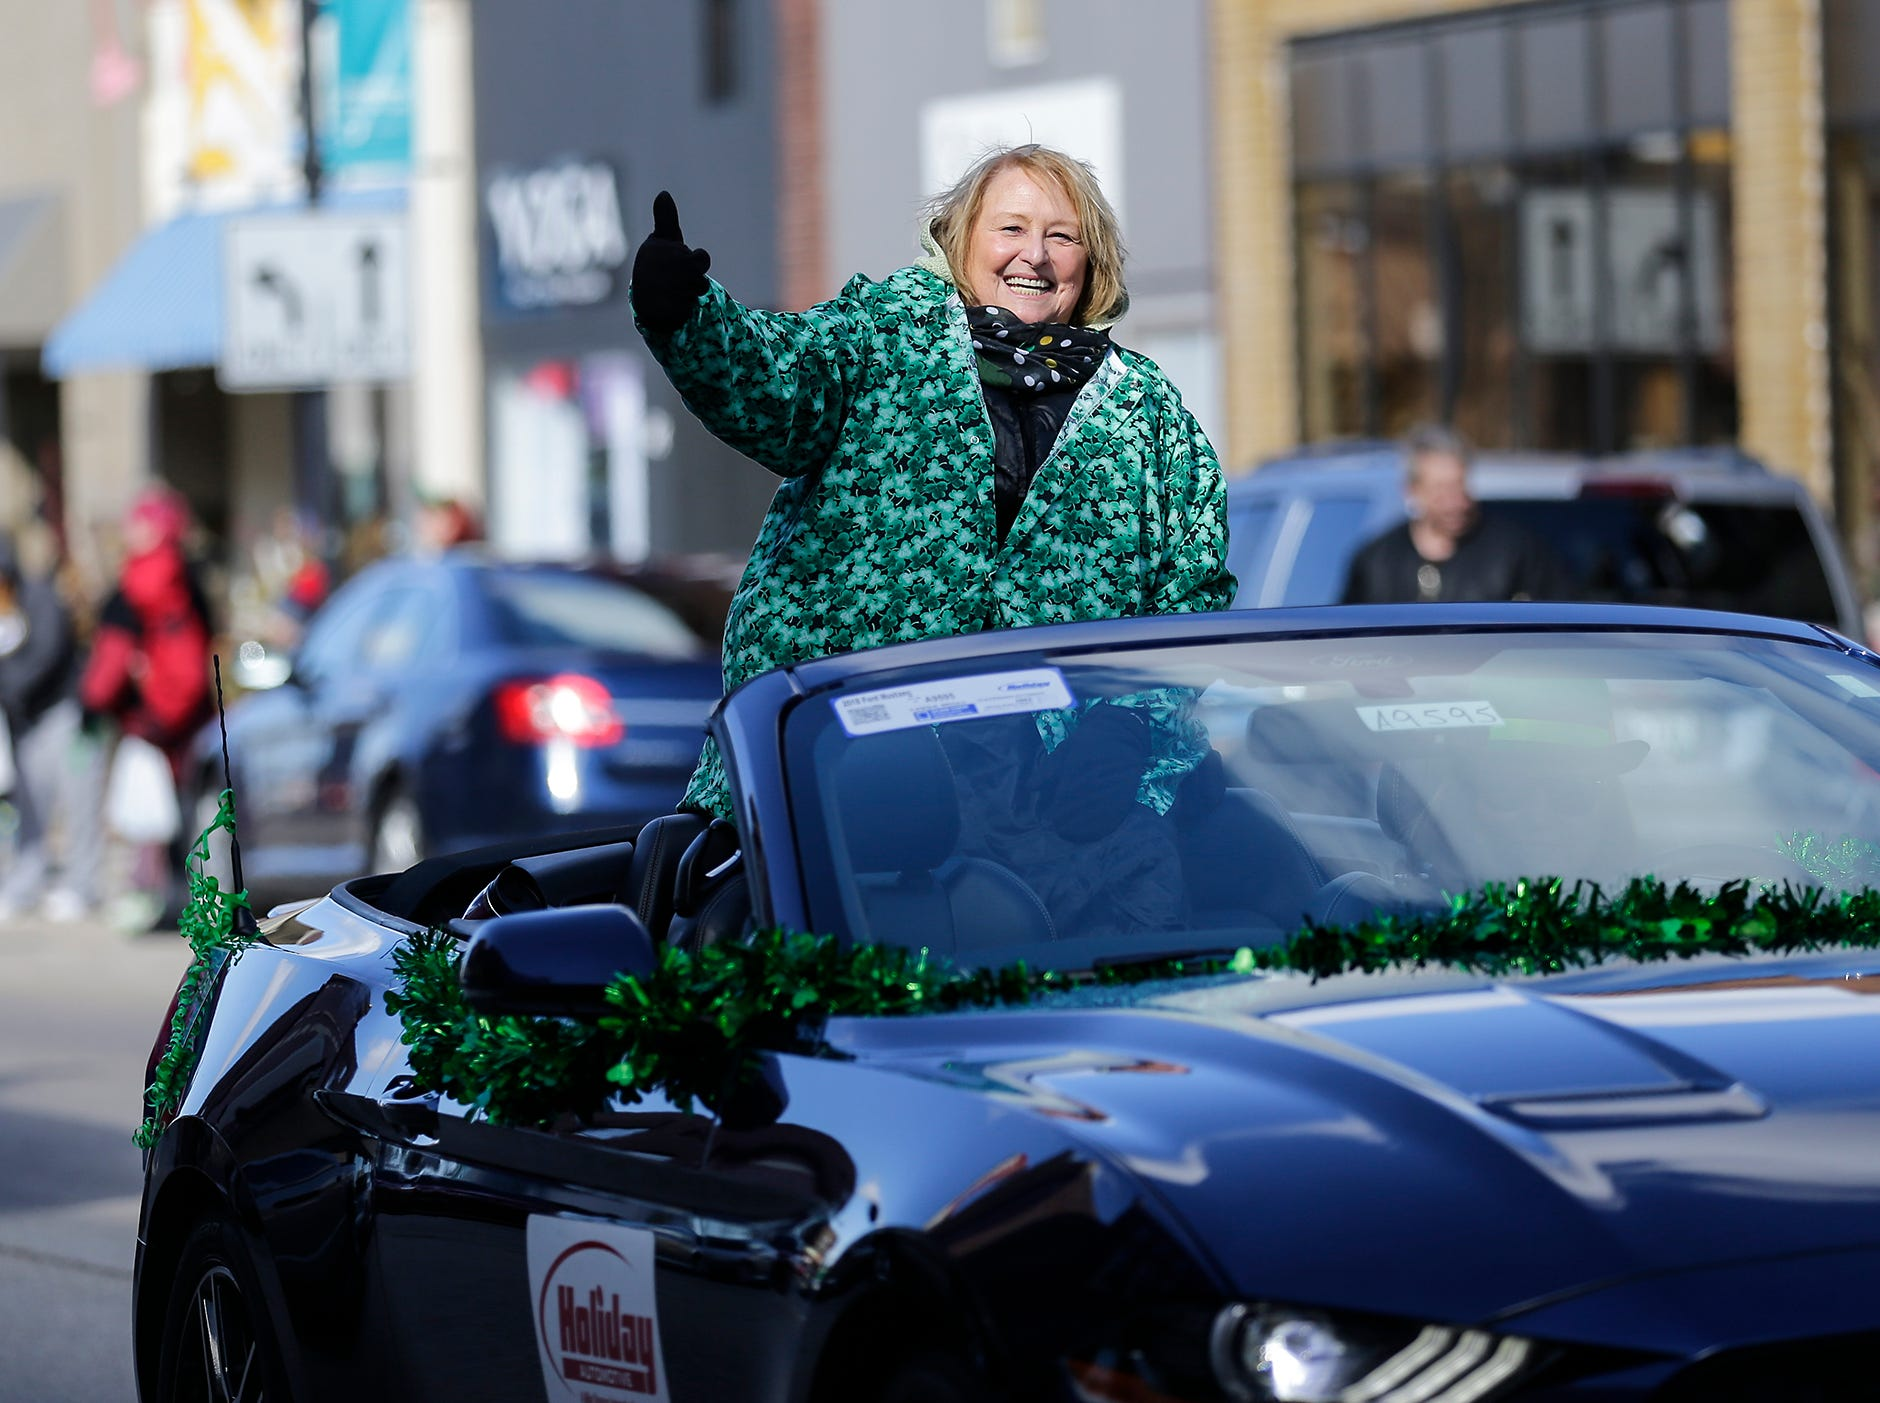 Fond du Lac City Council President Karyn Merkel participated in the City of Fond du Lac St. Patrick's Day Parade Saturday, March 16, 2019 on Main Street in downtown Fond du Lac. Hundreds of people lined the street to watch over 50 parade participants. Doug Raflik/USA TODAY NETWORK-Wisconsin